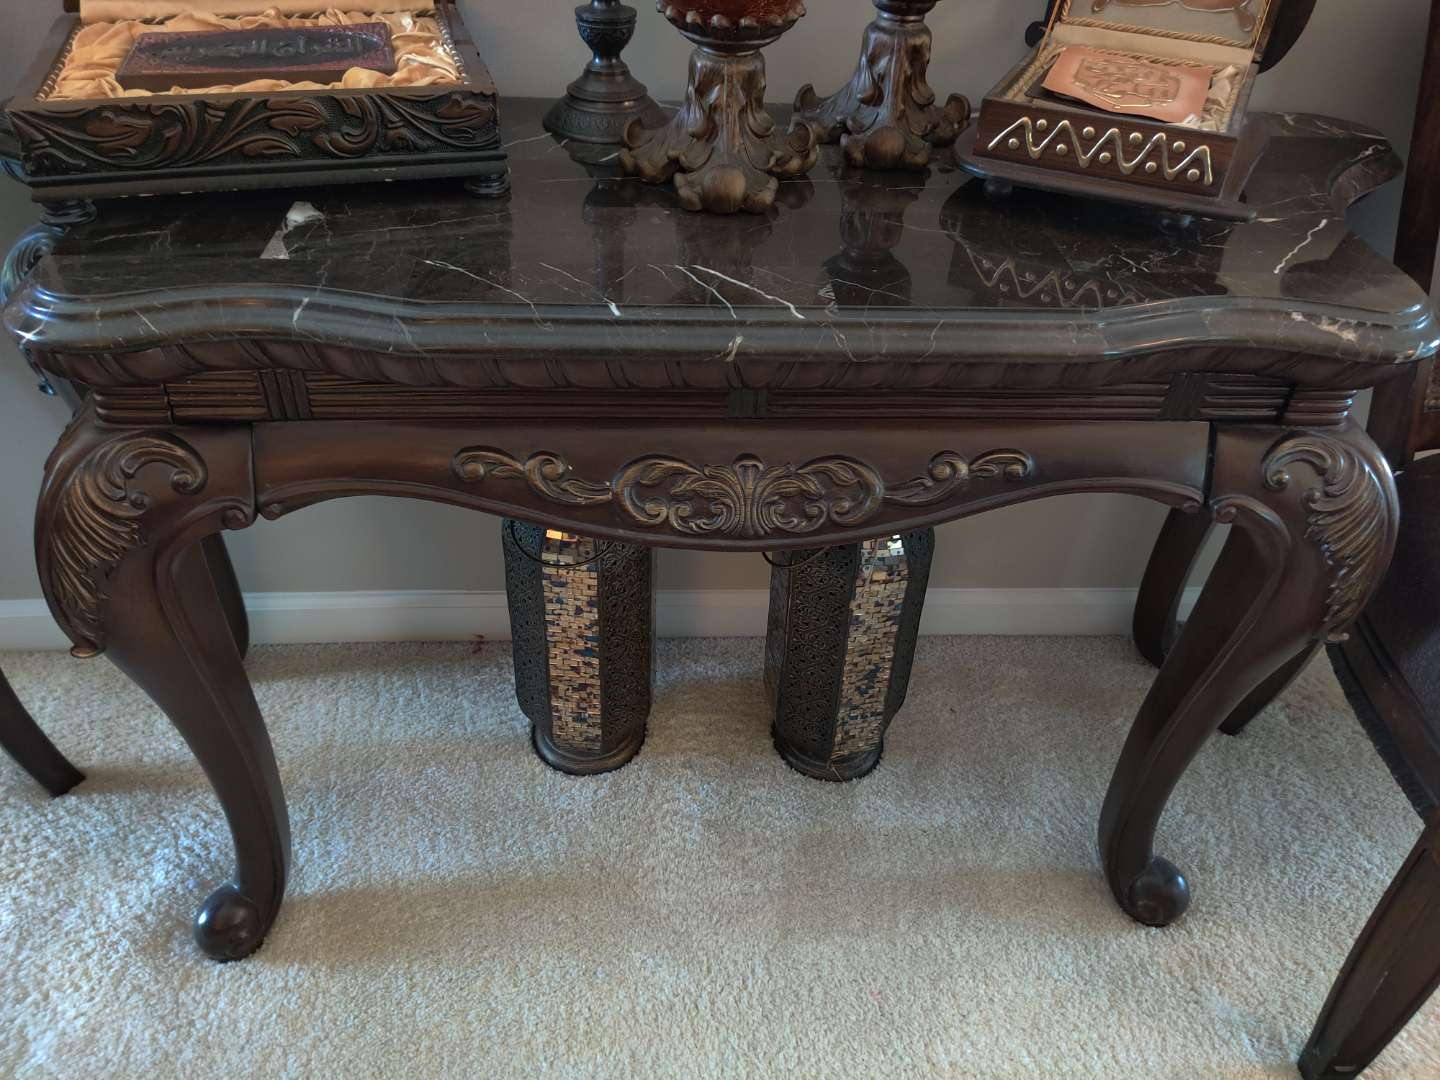 #7. extraordinary carved marble top sofa table 53 in Long 30 in tall excellent condition